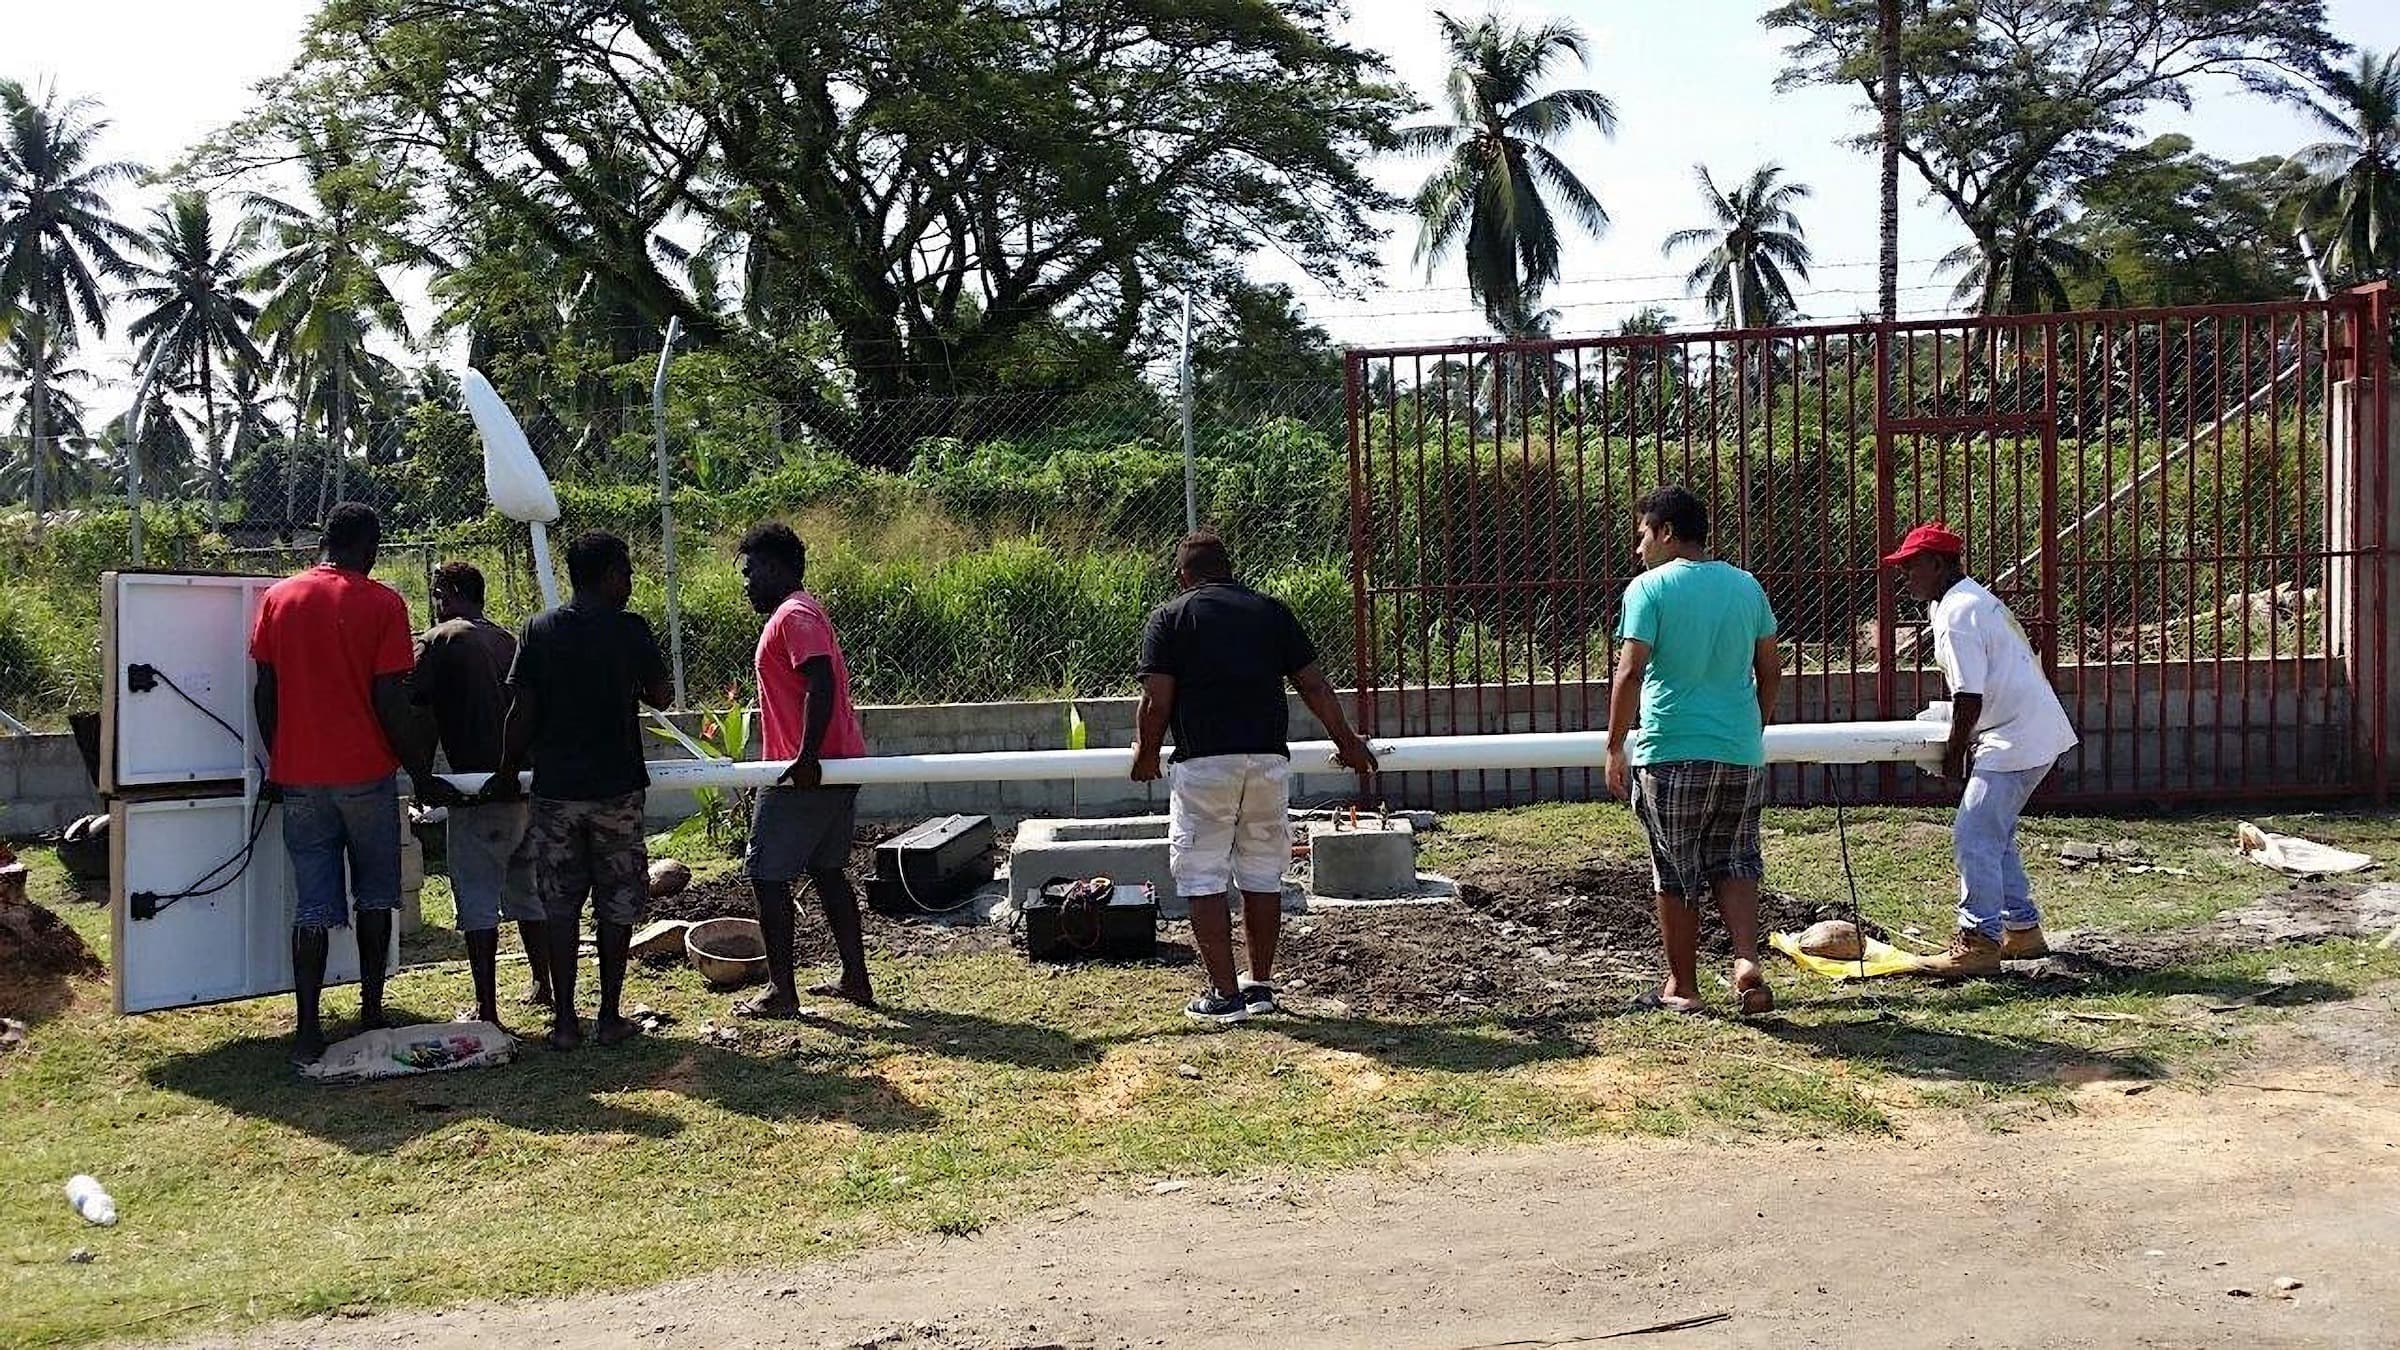 Solar street lights are an affordable solution for lighting both urban and rural communities anywhere in the world. In Honiara, the capital city of the Solomon Islands, ANETHIC installed the 35 watts solar street lights in the beautiful and tropical city.